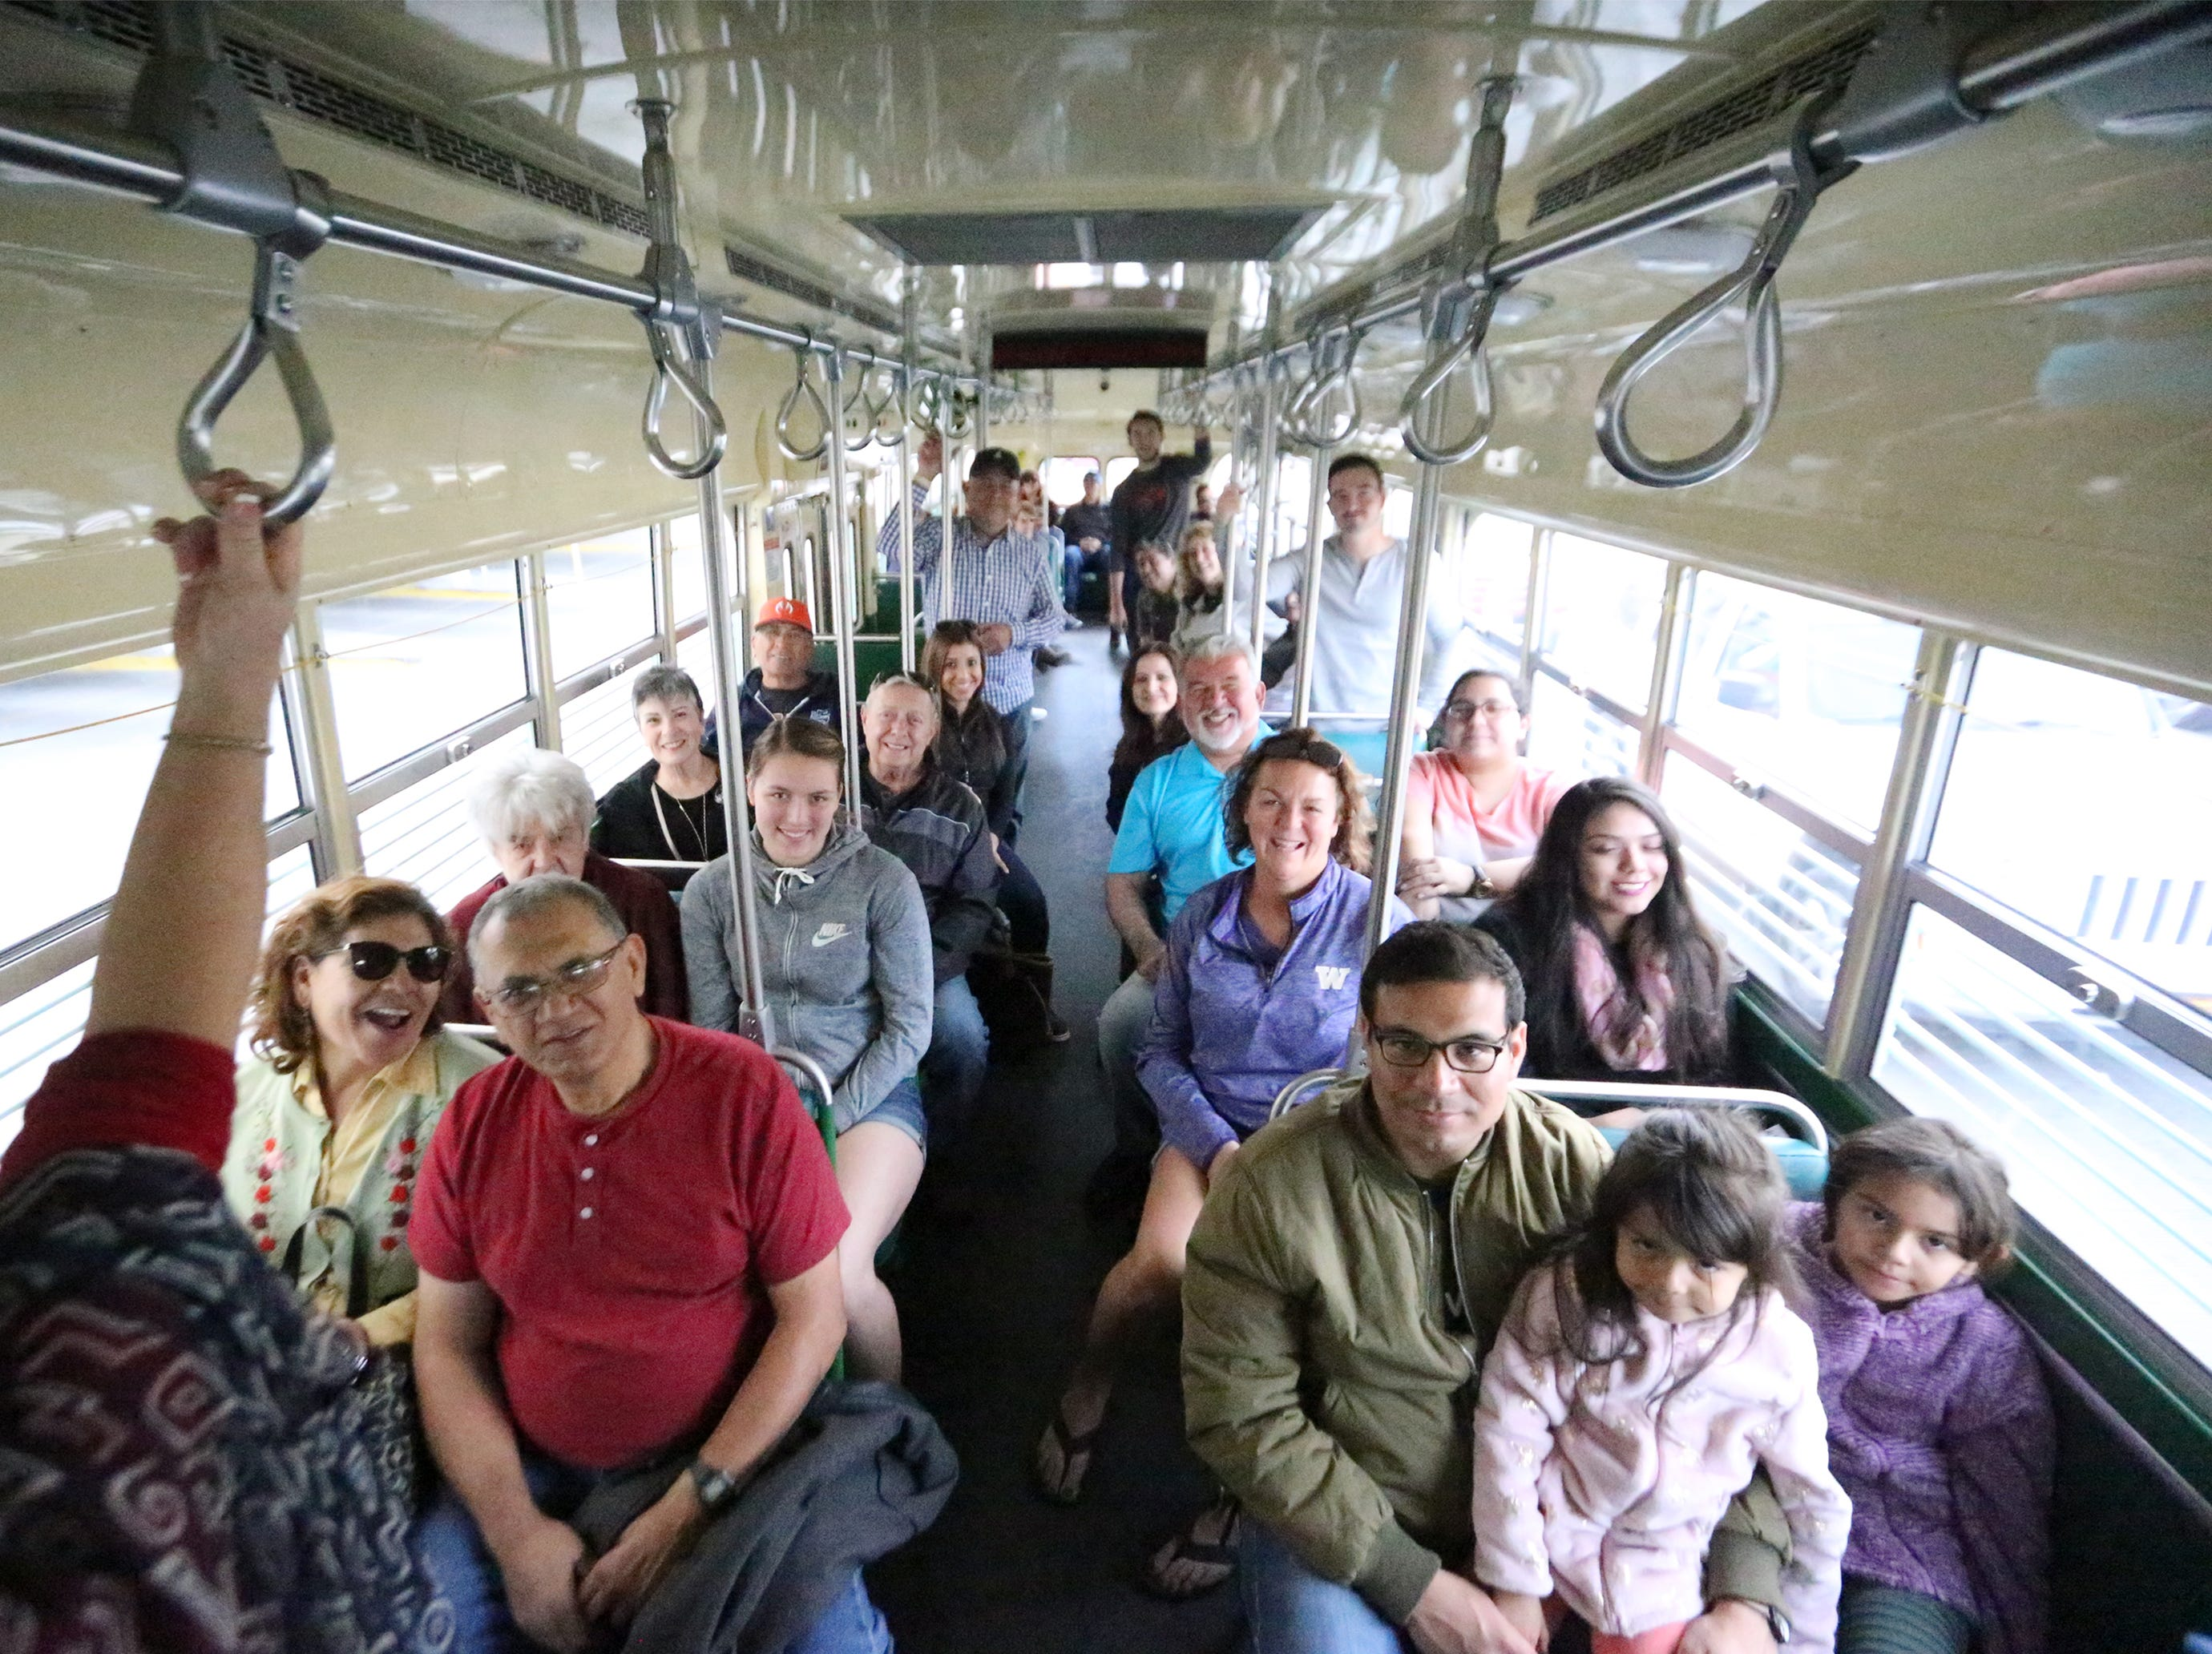 Streetcar 1506 was filled to capacity during a trip around the downtown area and South El Paso Friday afternoon.